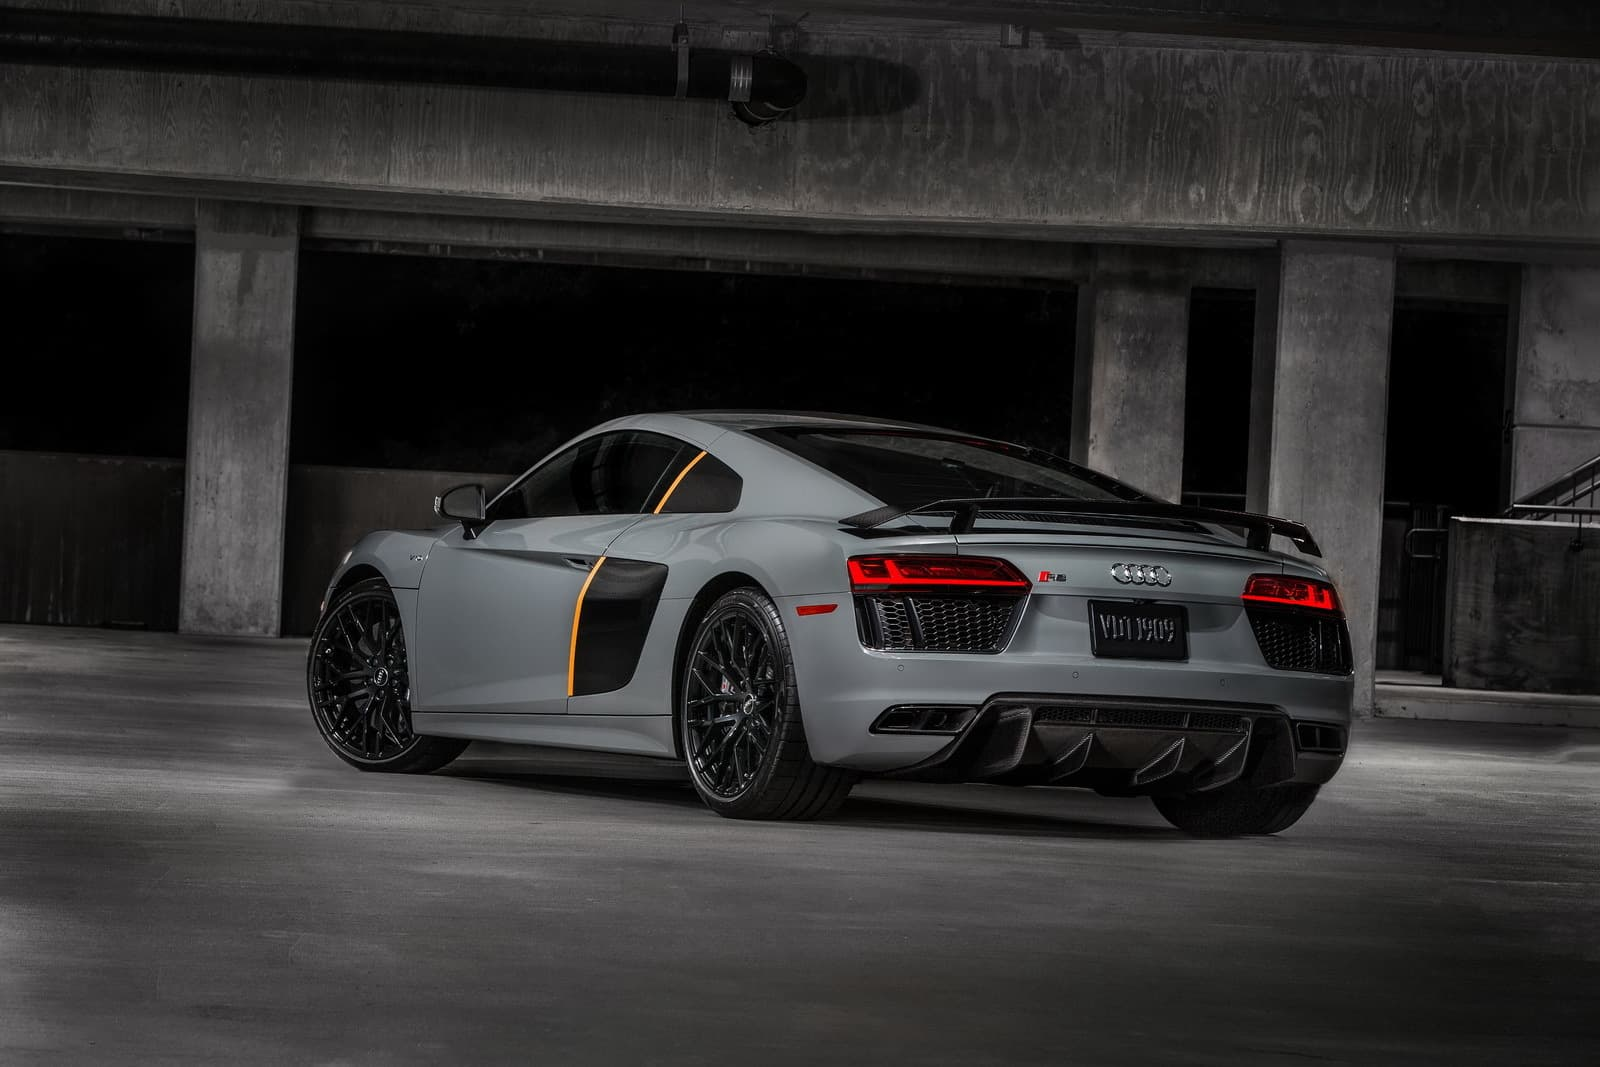 2017-audi-r8-exclusive-edition-laser-headlights-2